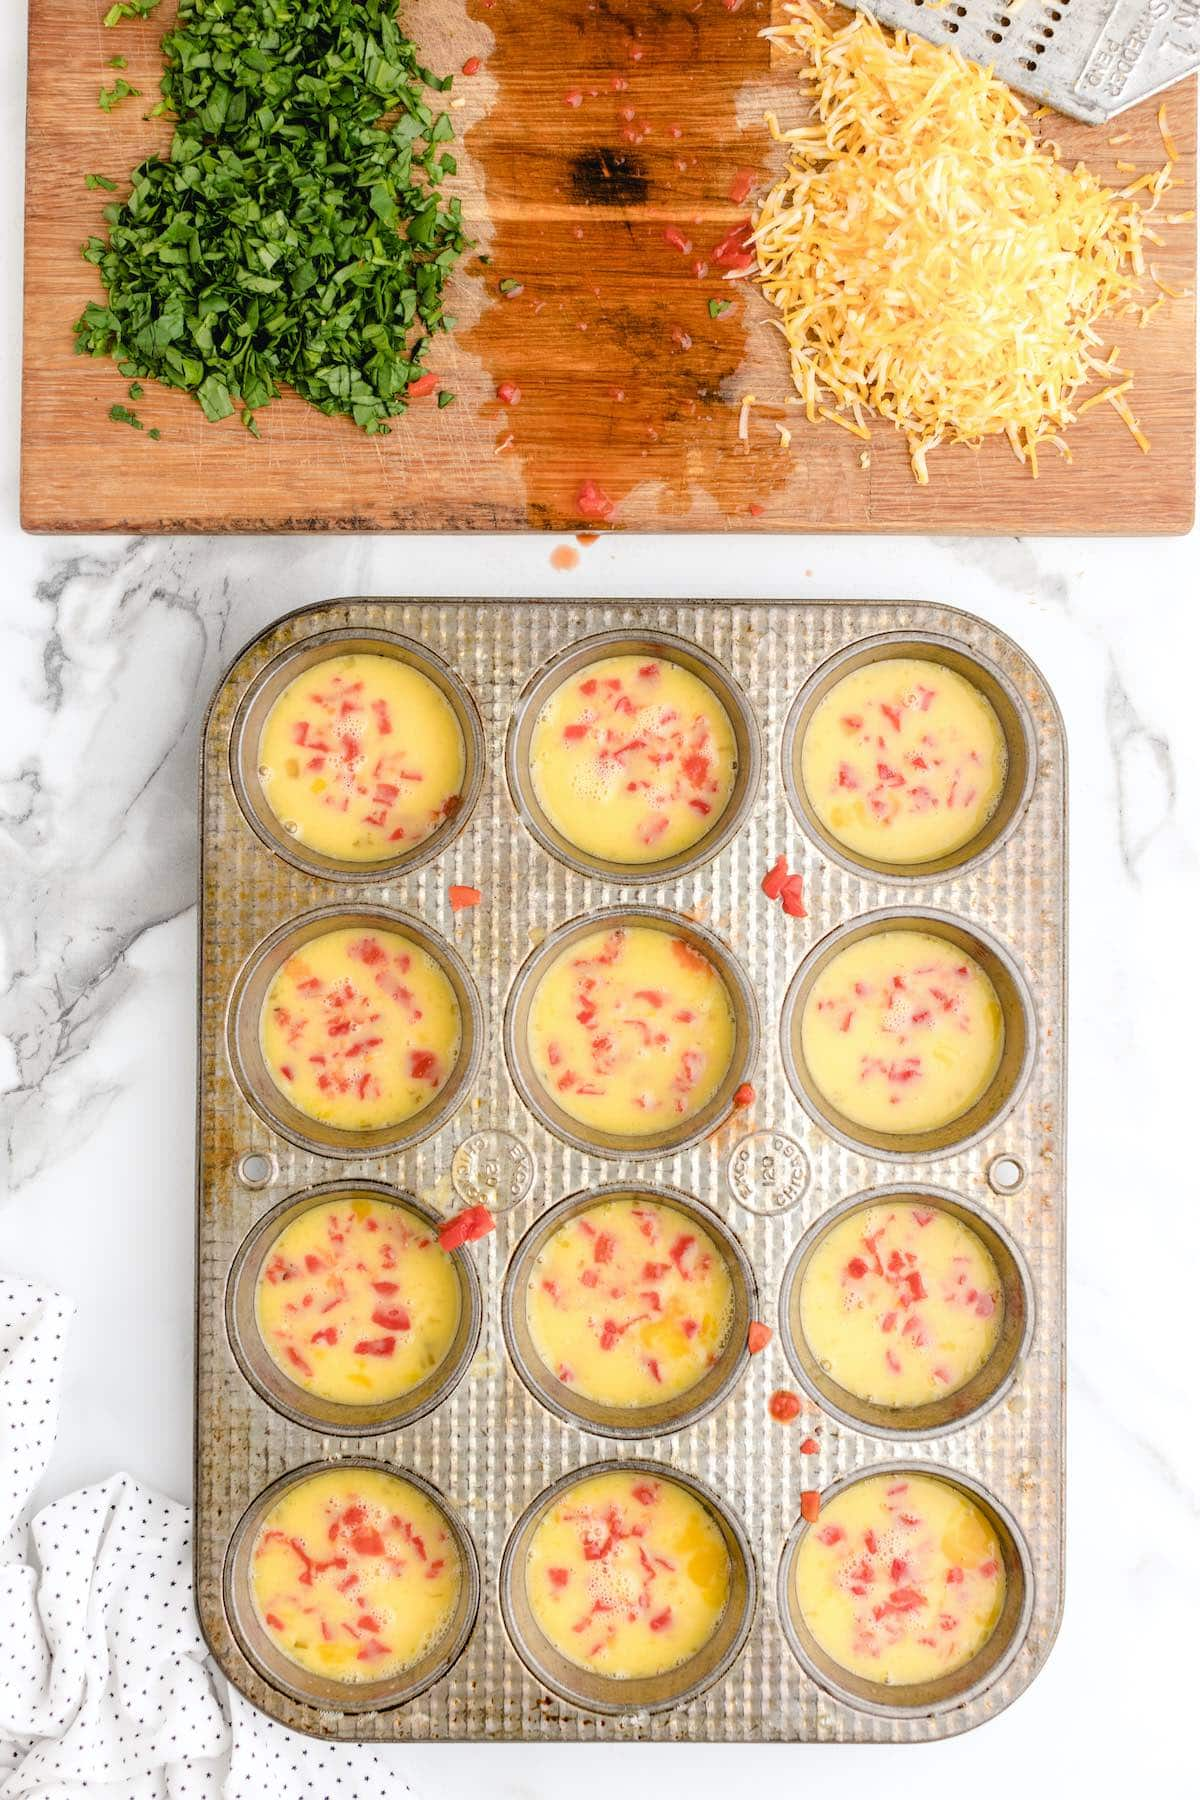 add red bell peppers in each muffin stain